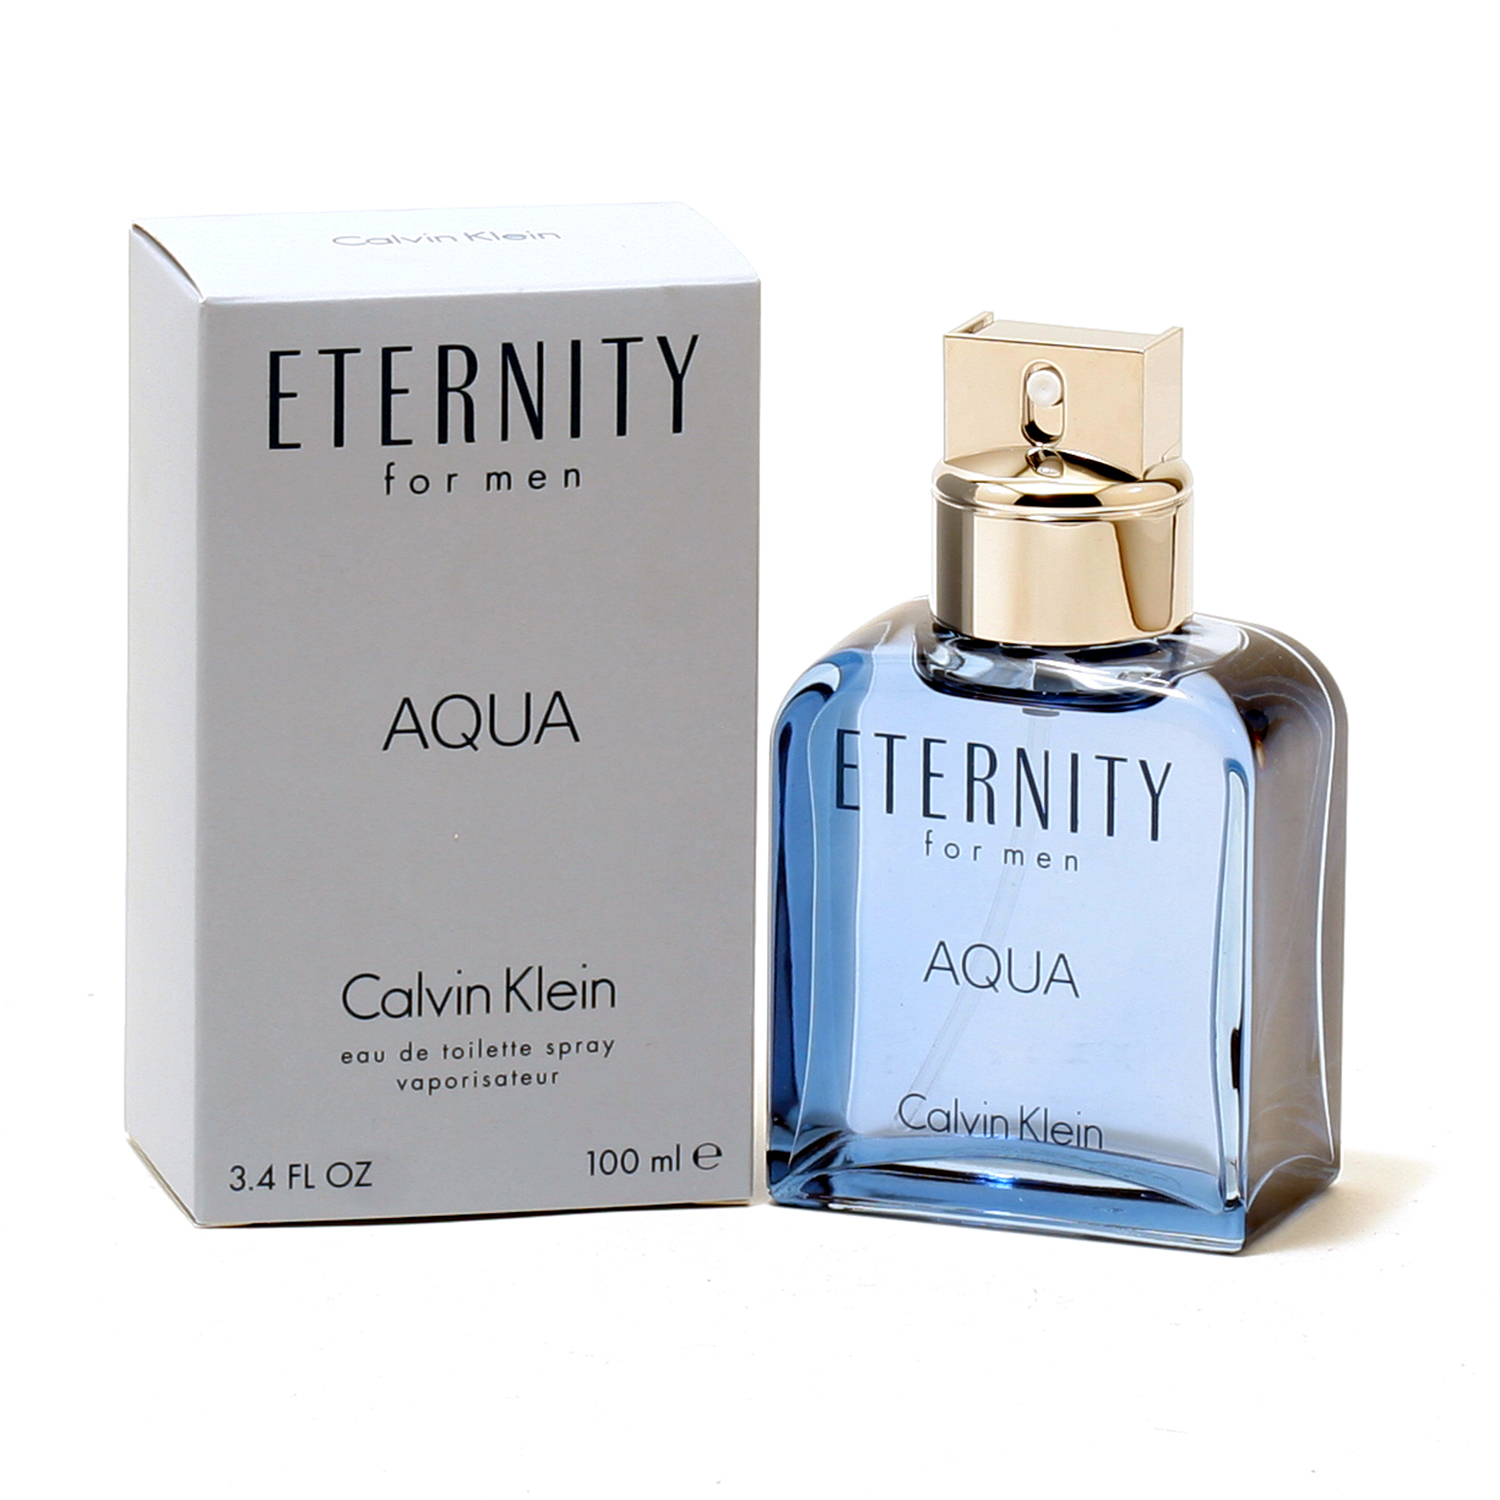 ETERNITY AQUA MEN by CALVINKLEIN – EDT SPRAY - Calvin Klein - Perfume Discount